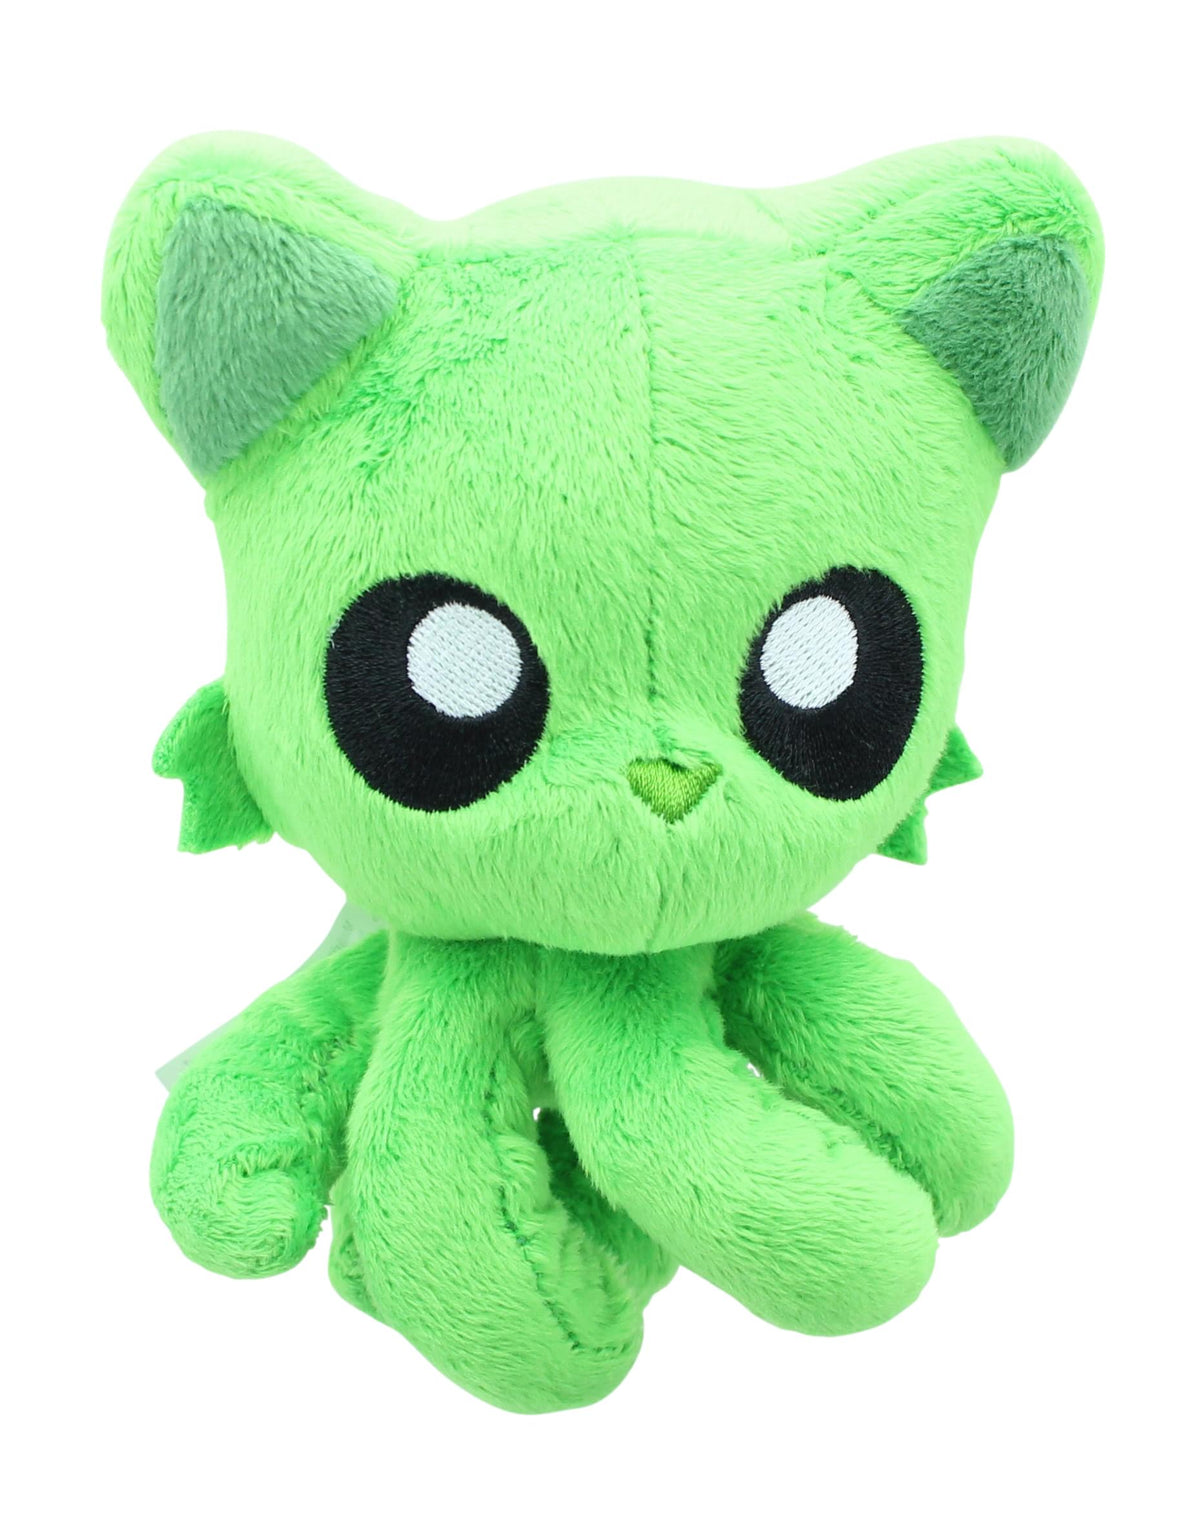 Tentacle Kitty Little Ones 4 Inch Plush | Green